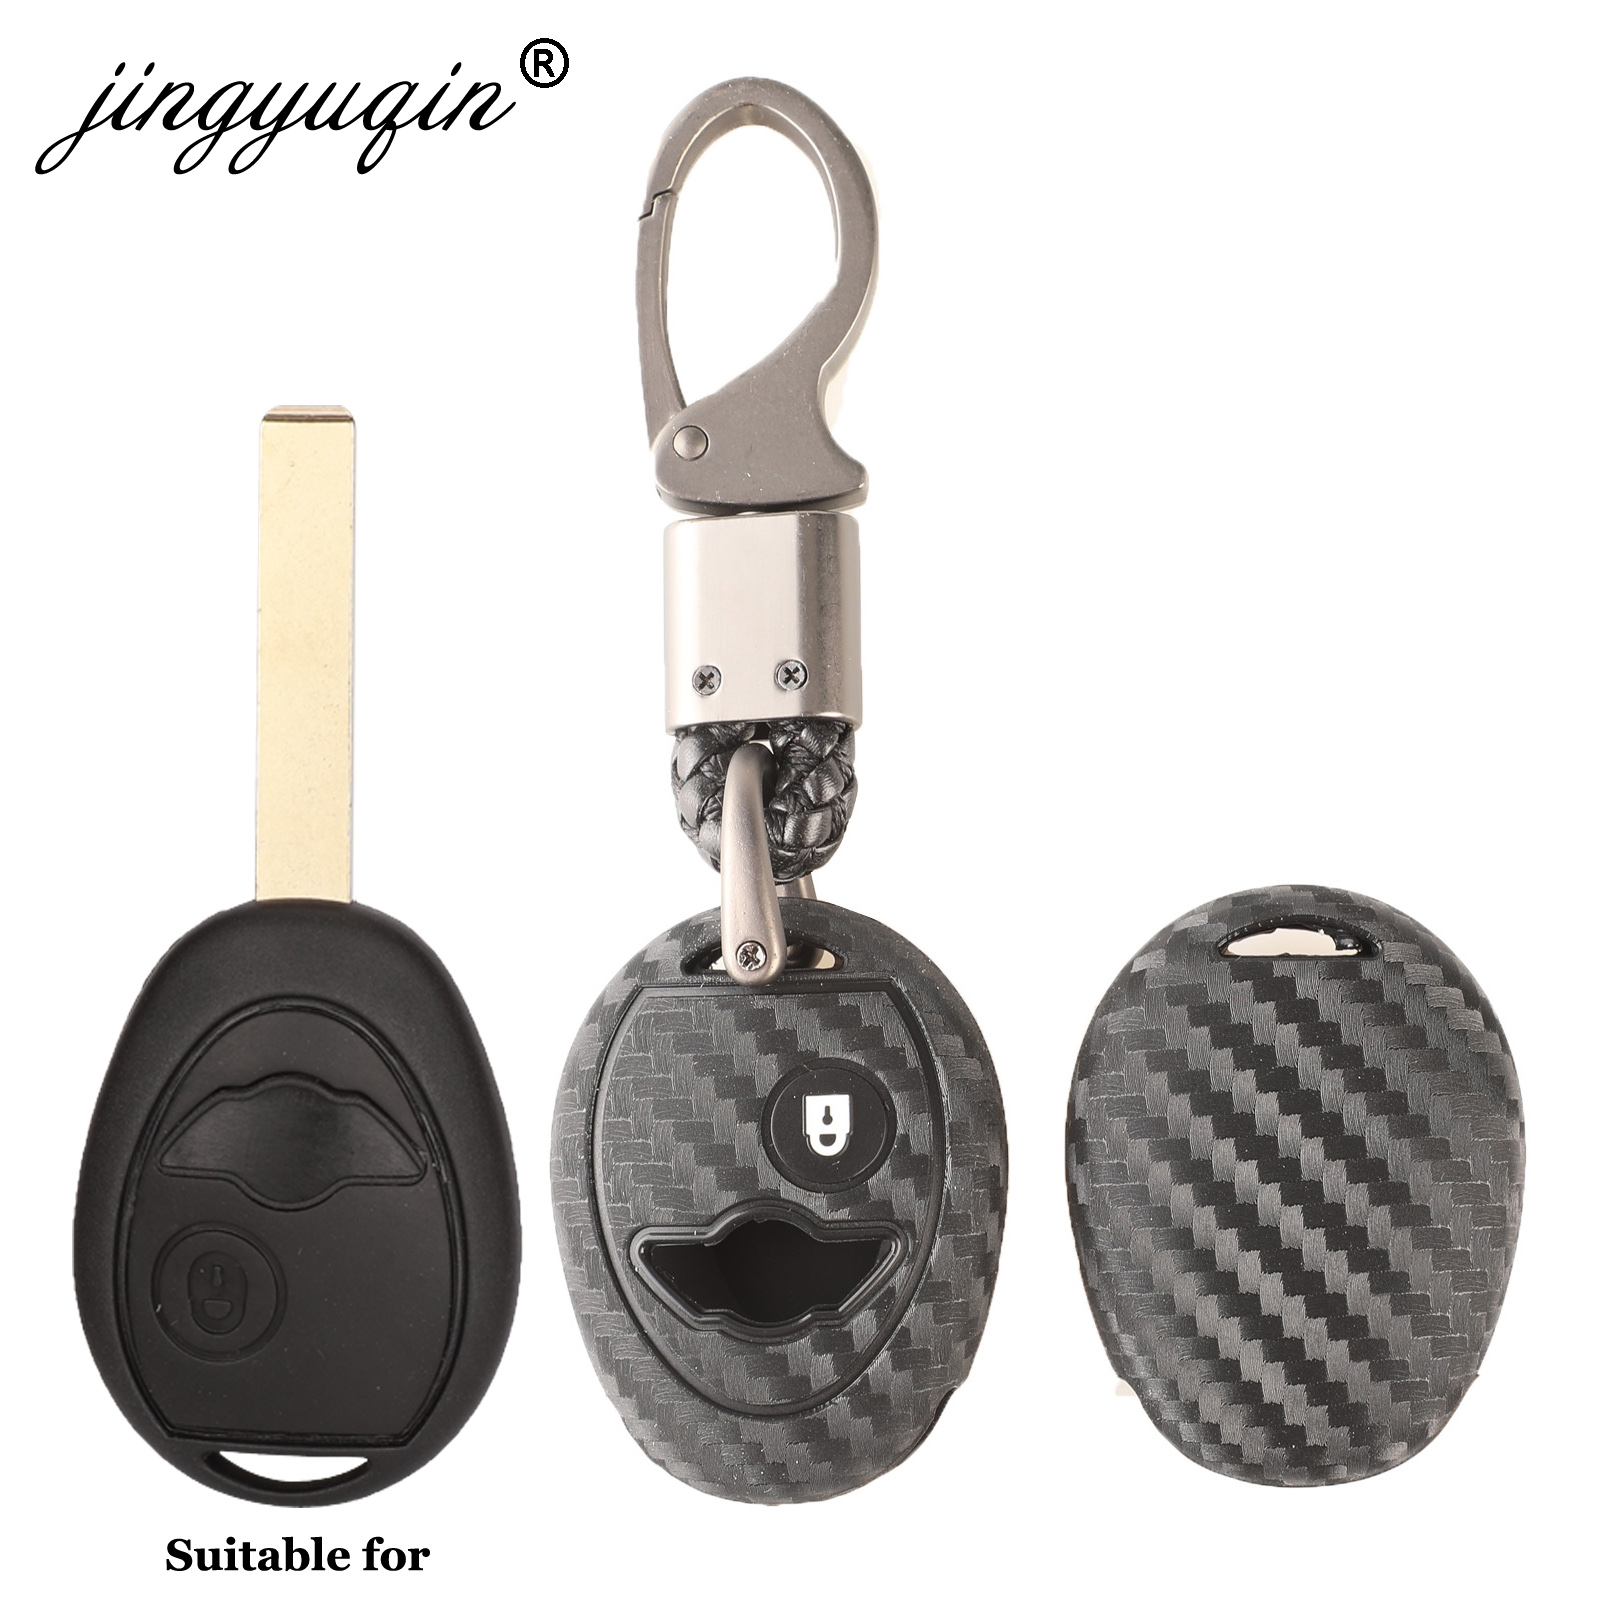 Jingyuqin Car Styling Silicone Car Key Case Protector Fob For BMW Mini Cooper R50 R53 Auto Accessories 1 Button Carbon Key Cover